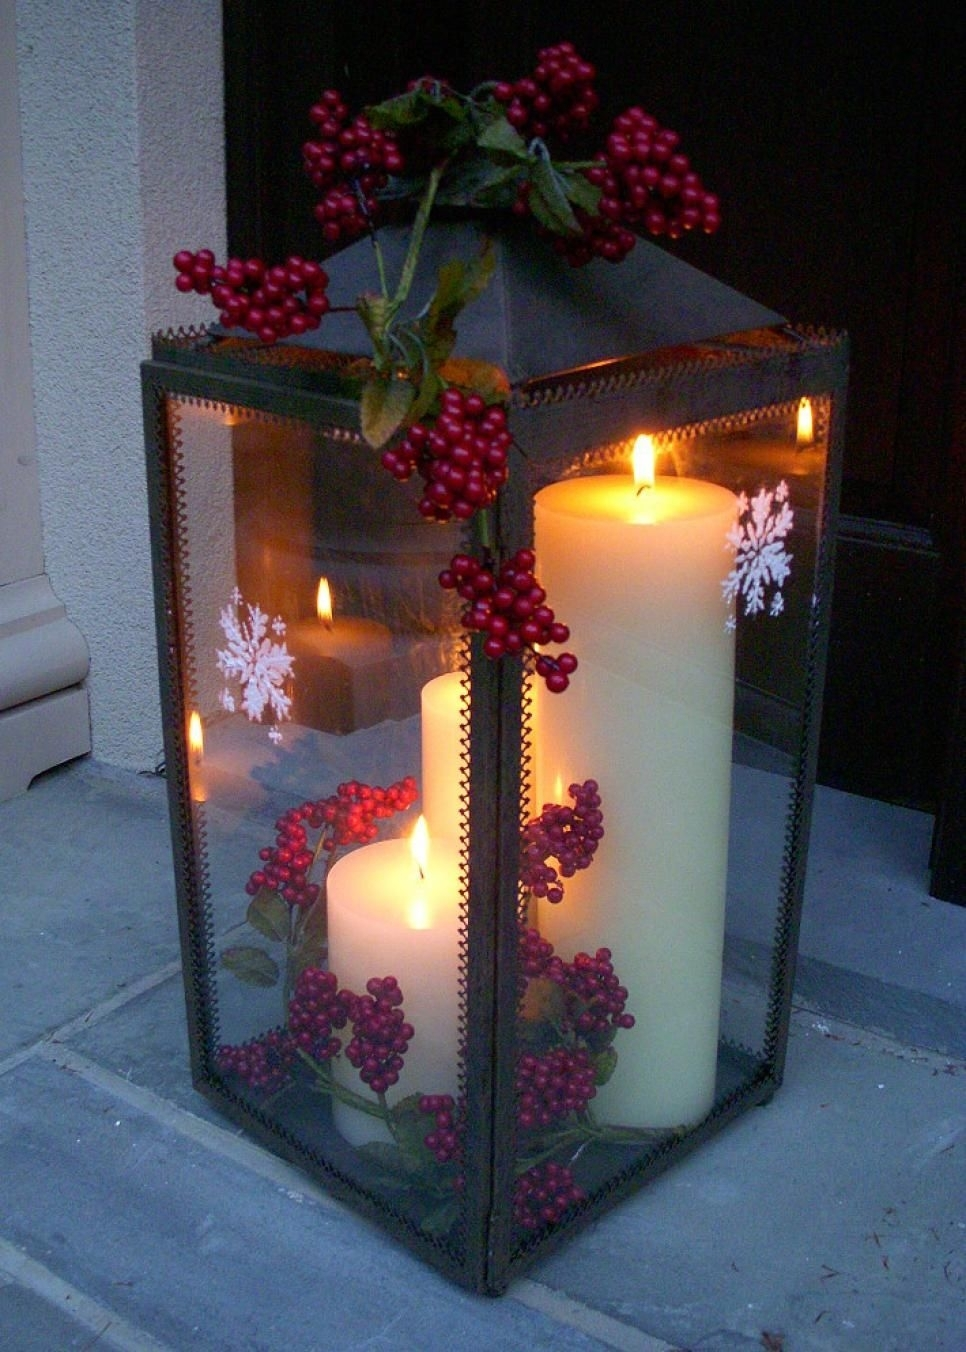 35+ Crafty Outdoor Holiday Decorating Ideas | Christmas Decorating In Outdoor Holiday Lanterns (View 6 of 20)